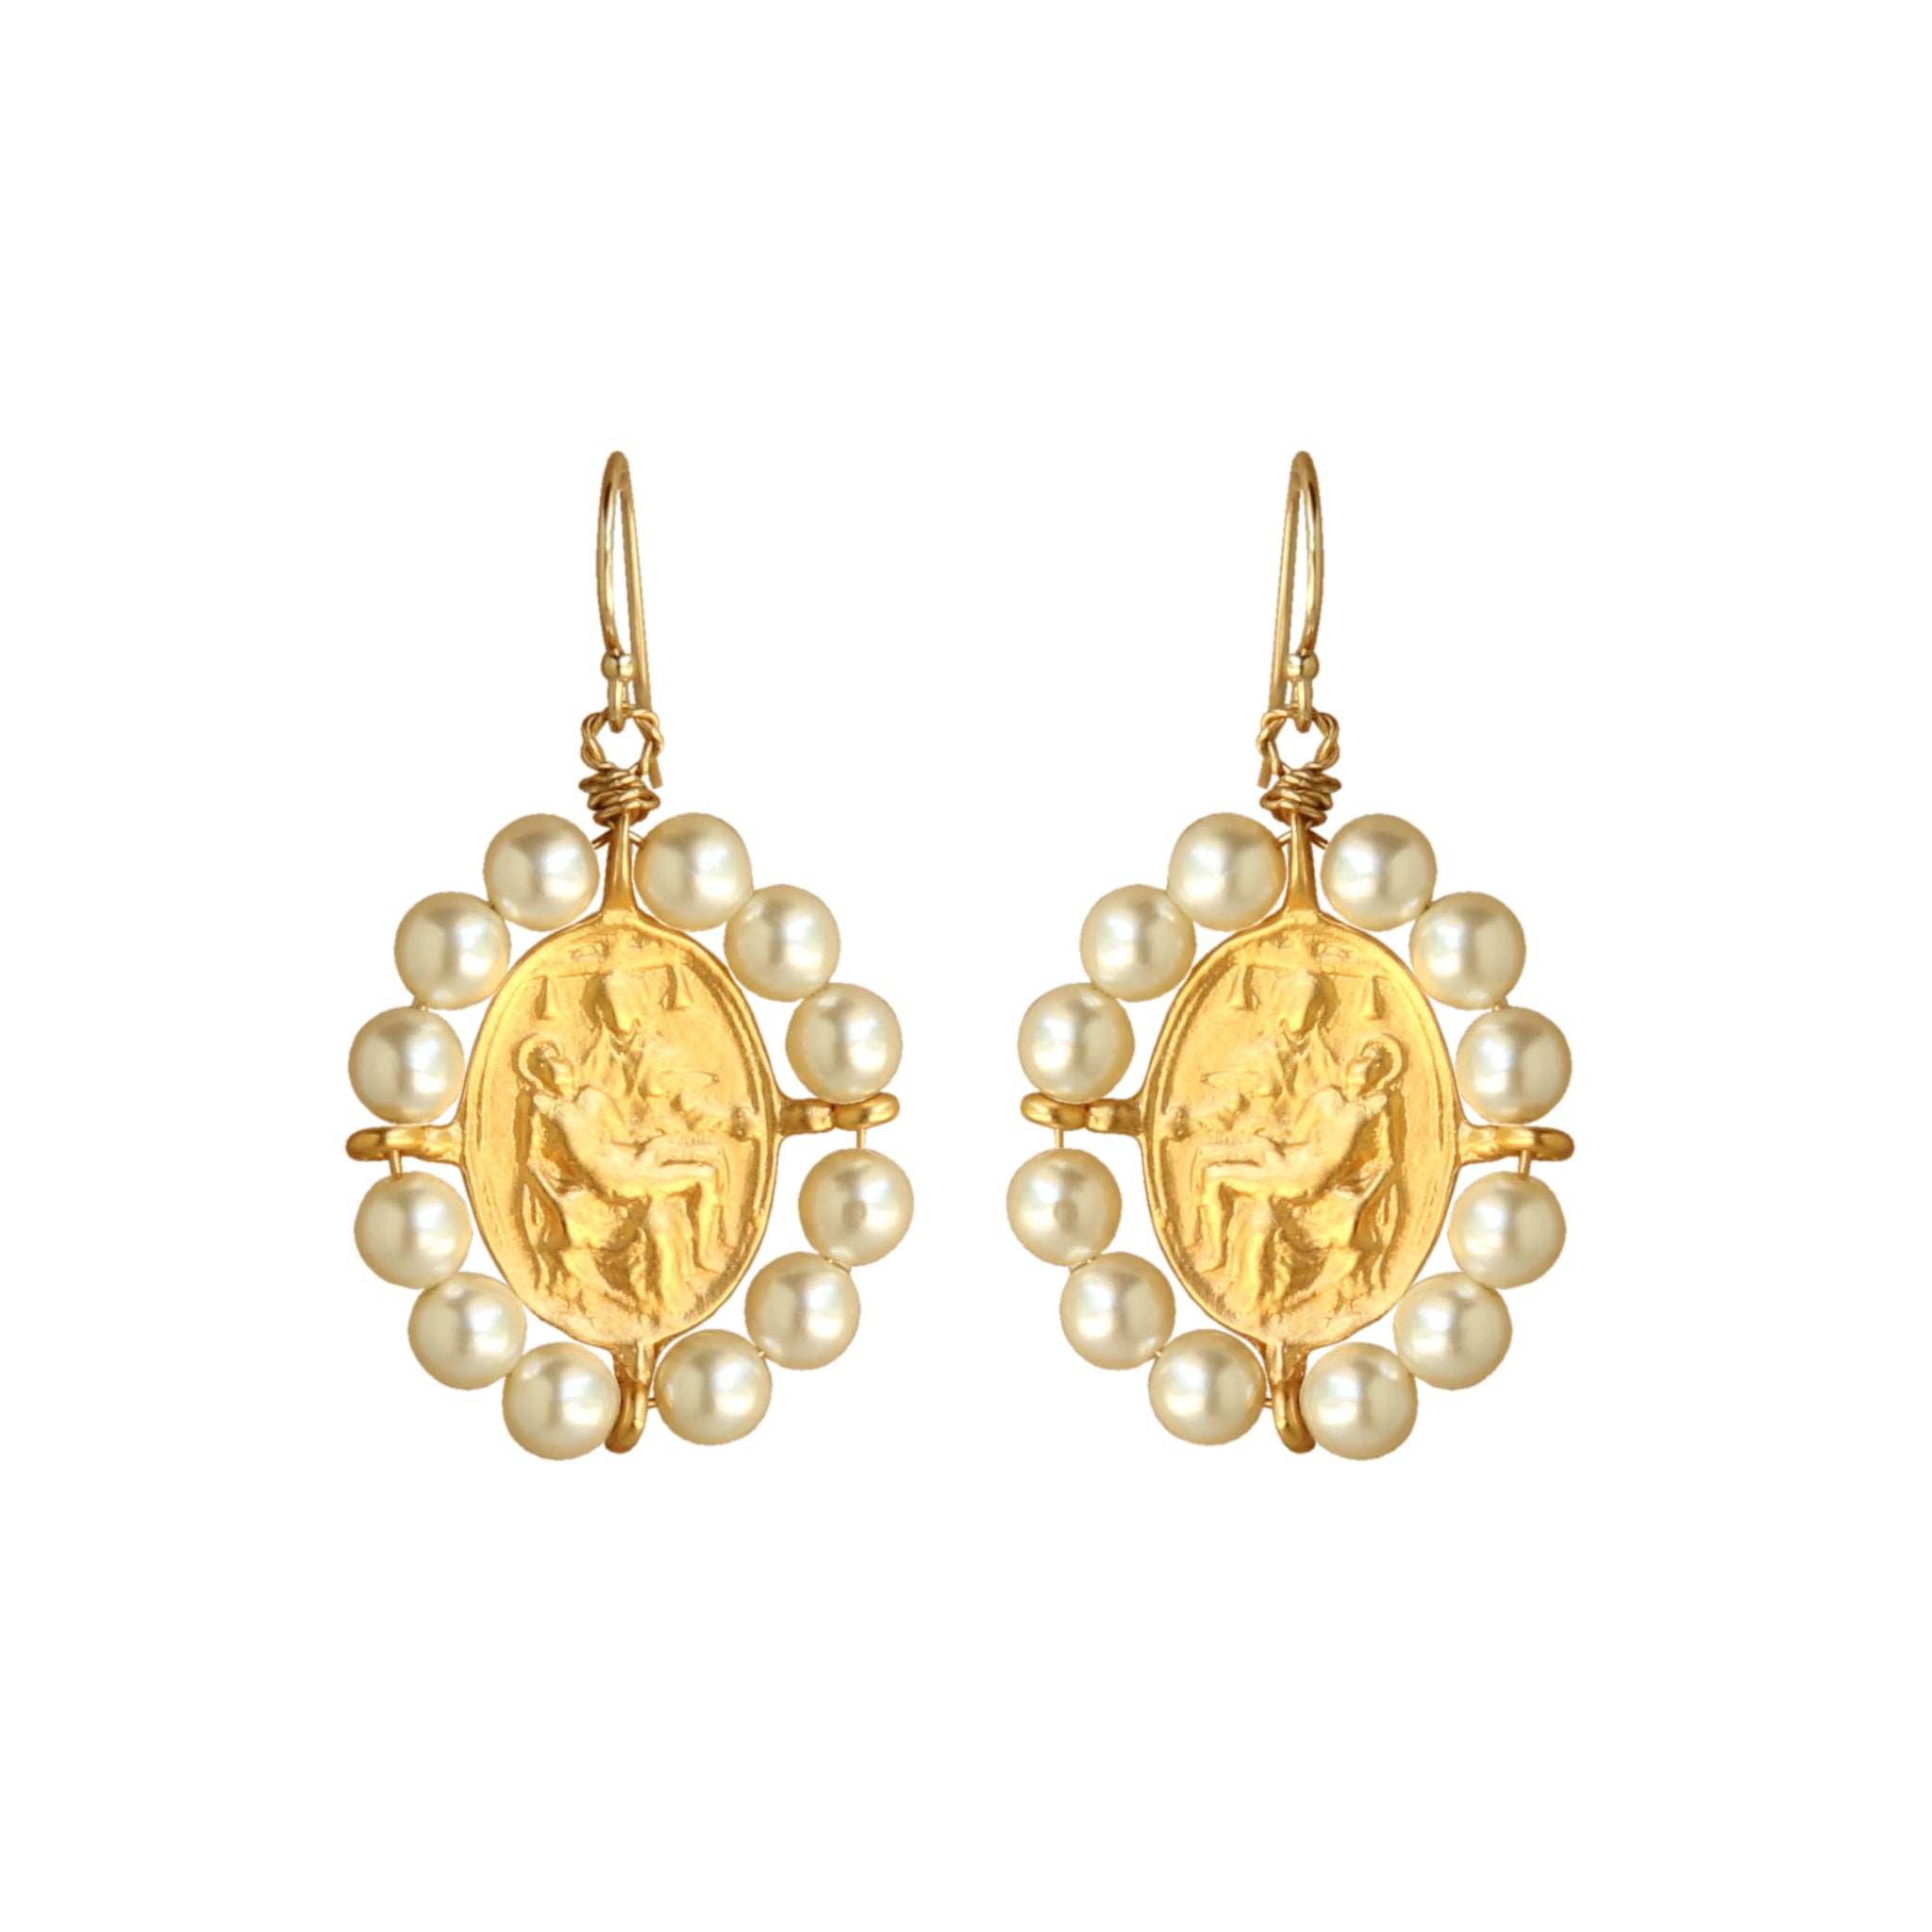 Pieta Earrings